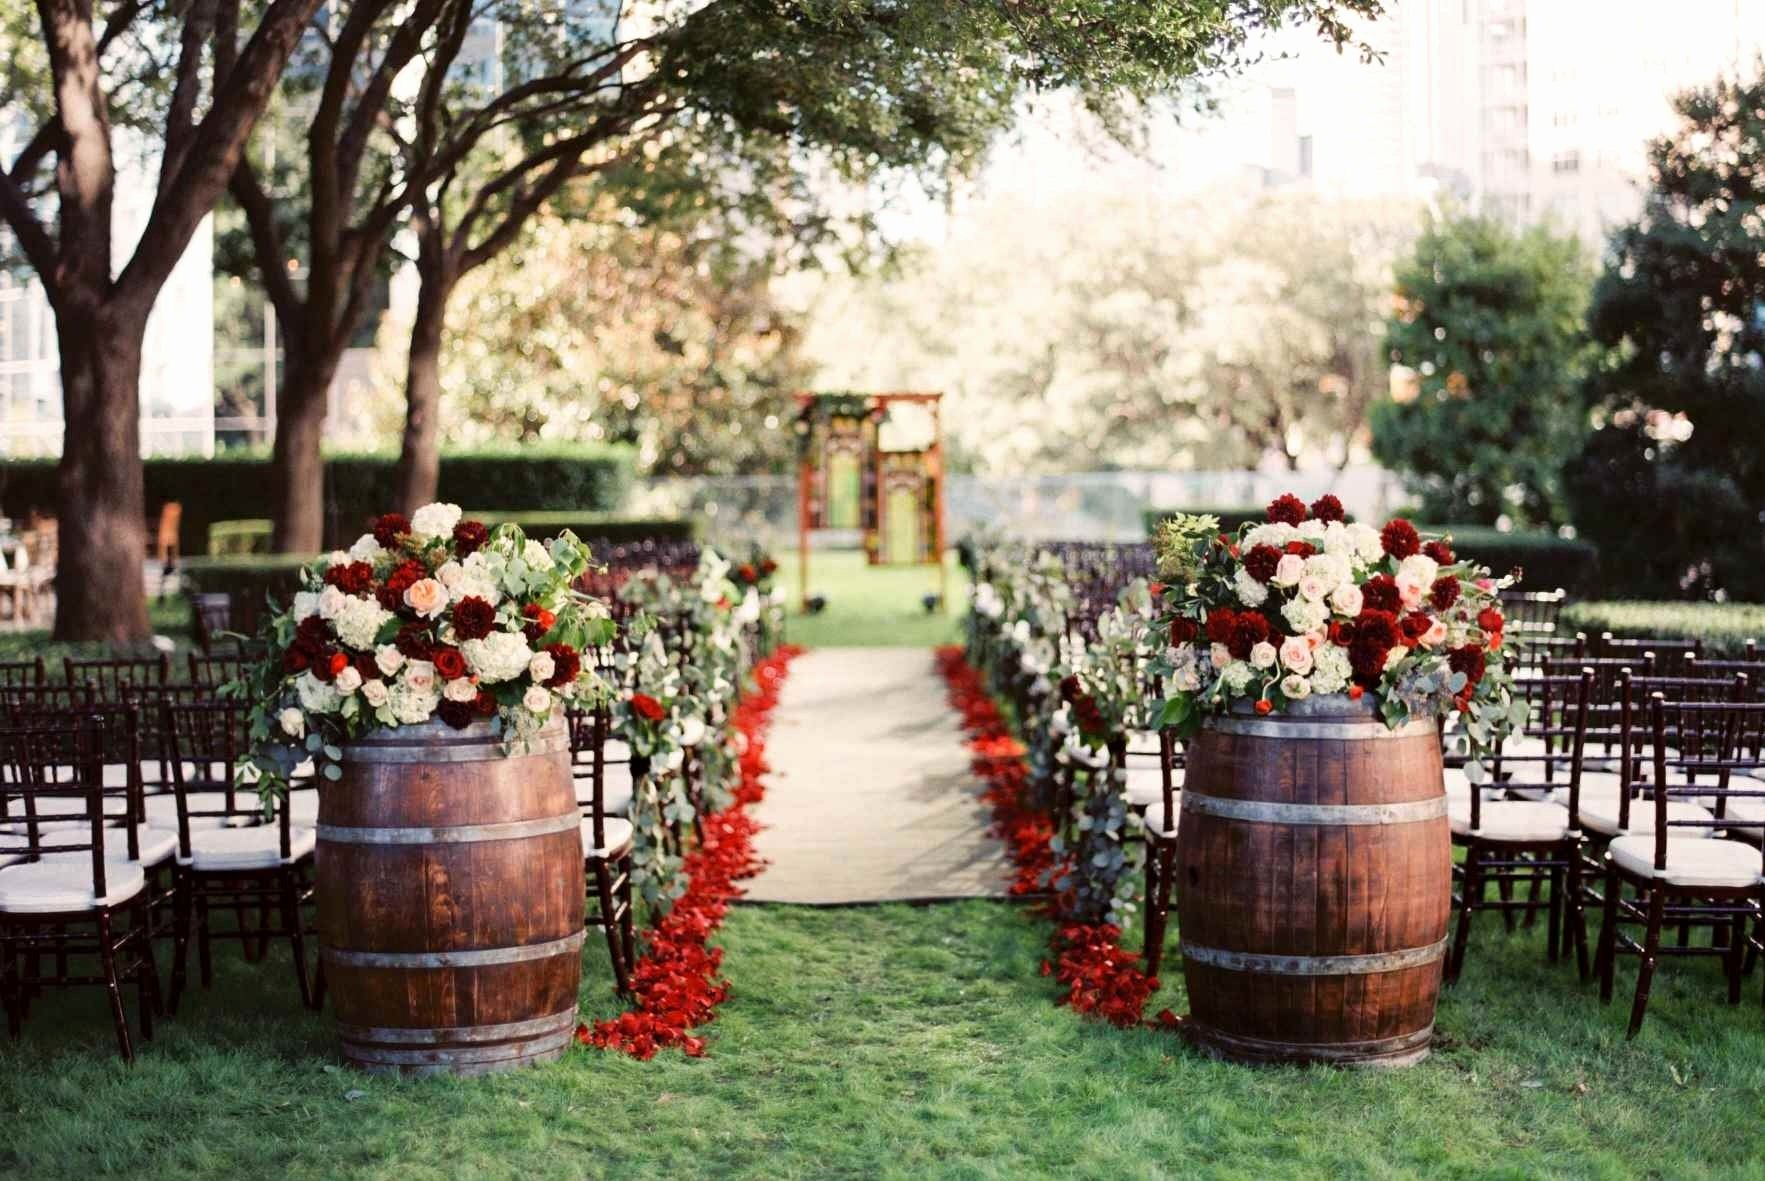 10 Amazing Country Wedding Ideas For Fall 15 Beautiful Outdoor Country  Wedding Ideas Wedding Idea